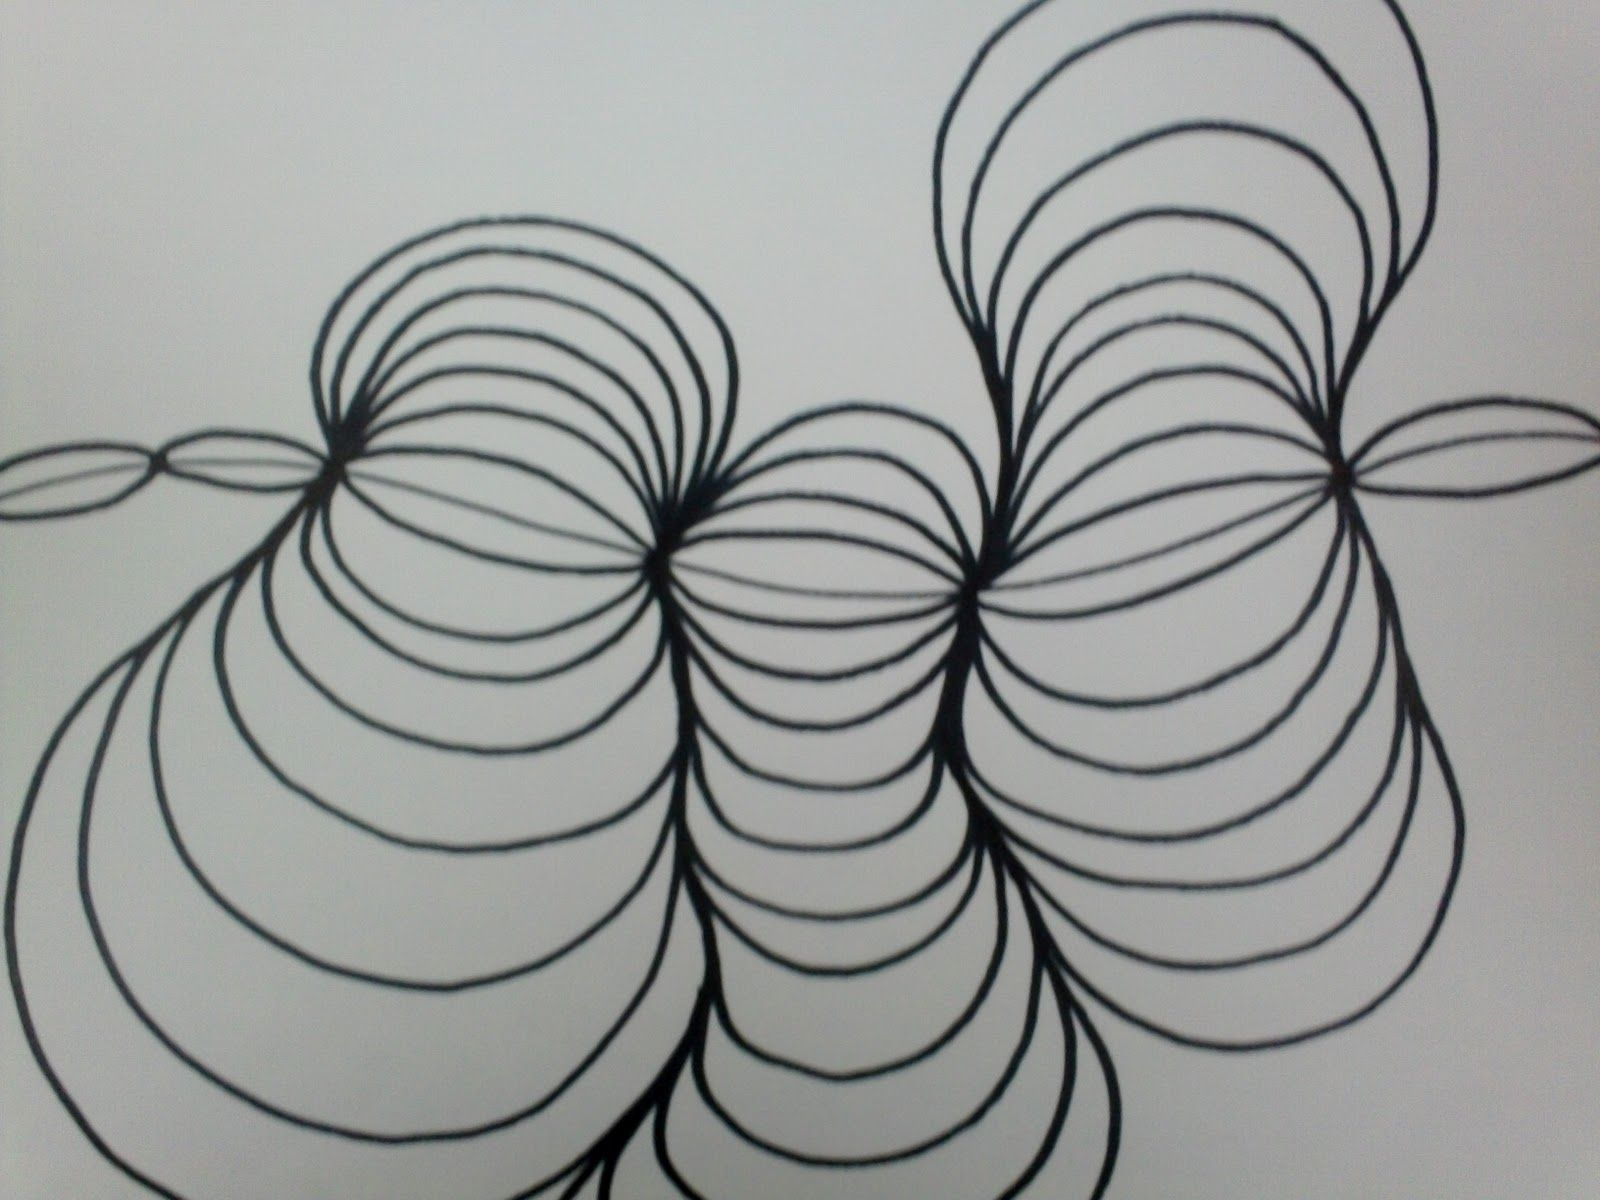 Line Design Art Project : Fun art project for kids one section at a time add larger and